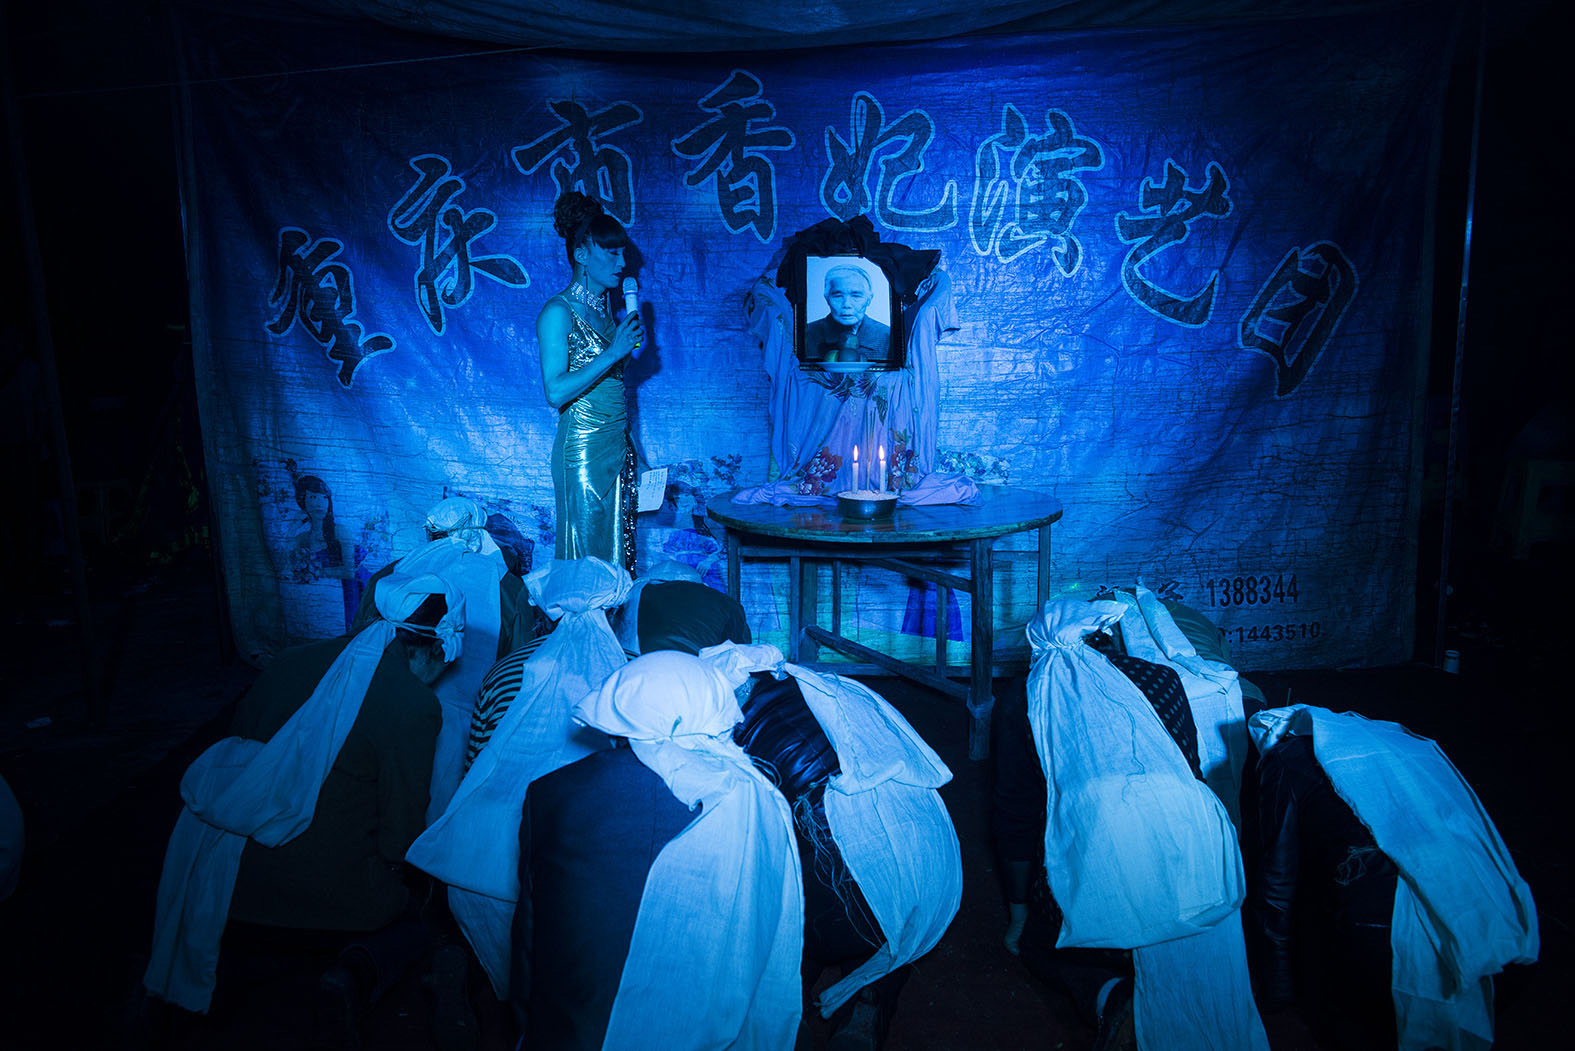 Family members kneel in front of a portrait of the departed as Liangzi hosts a funeral ceremony, April 10, 2014. As a funeral performer, Liangzi is skilled at singing, dancing, and wailing. She is proud of her wailing skill, and she tries to cry naturally at every funeral.